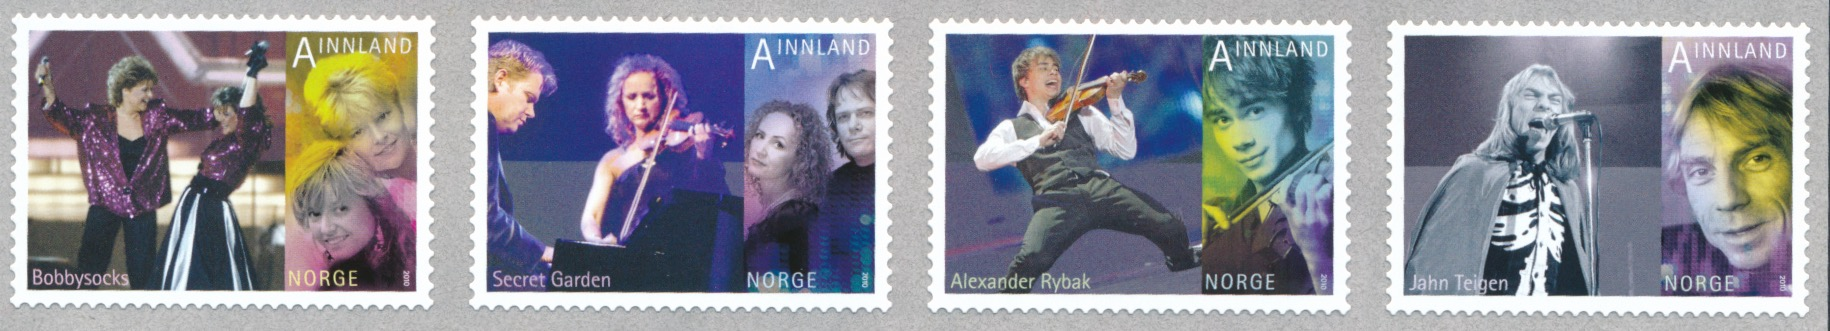 https://www.norstamps.com/content/images/stamps/norway/1755-58.jpeg